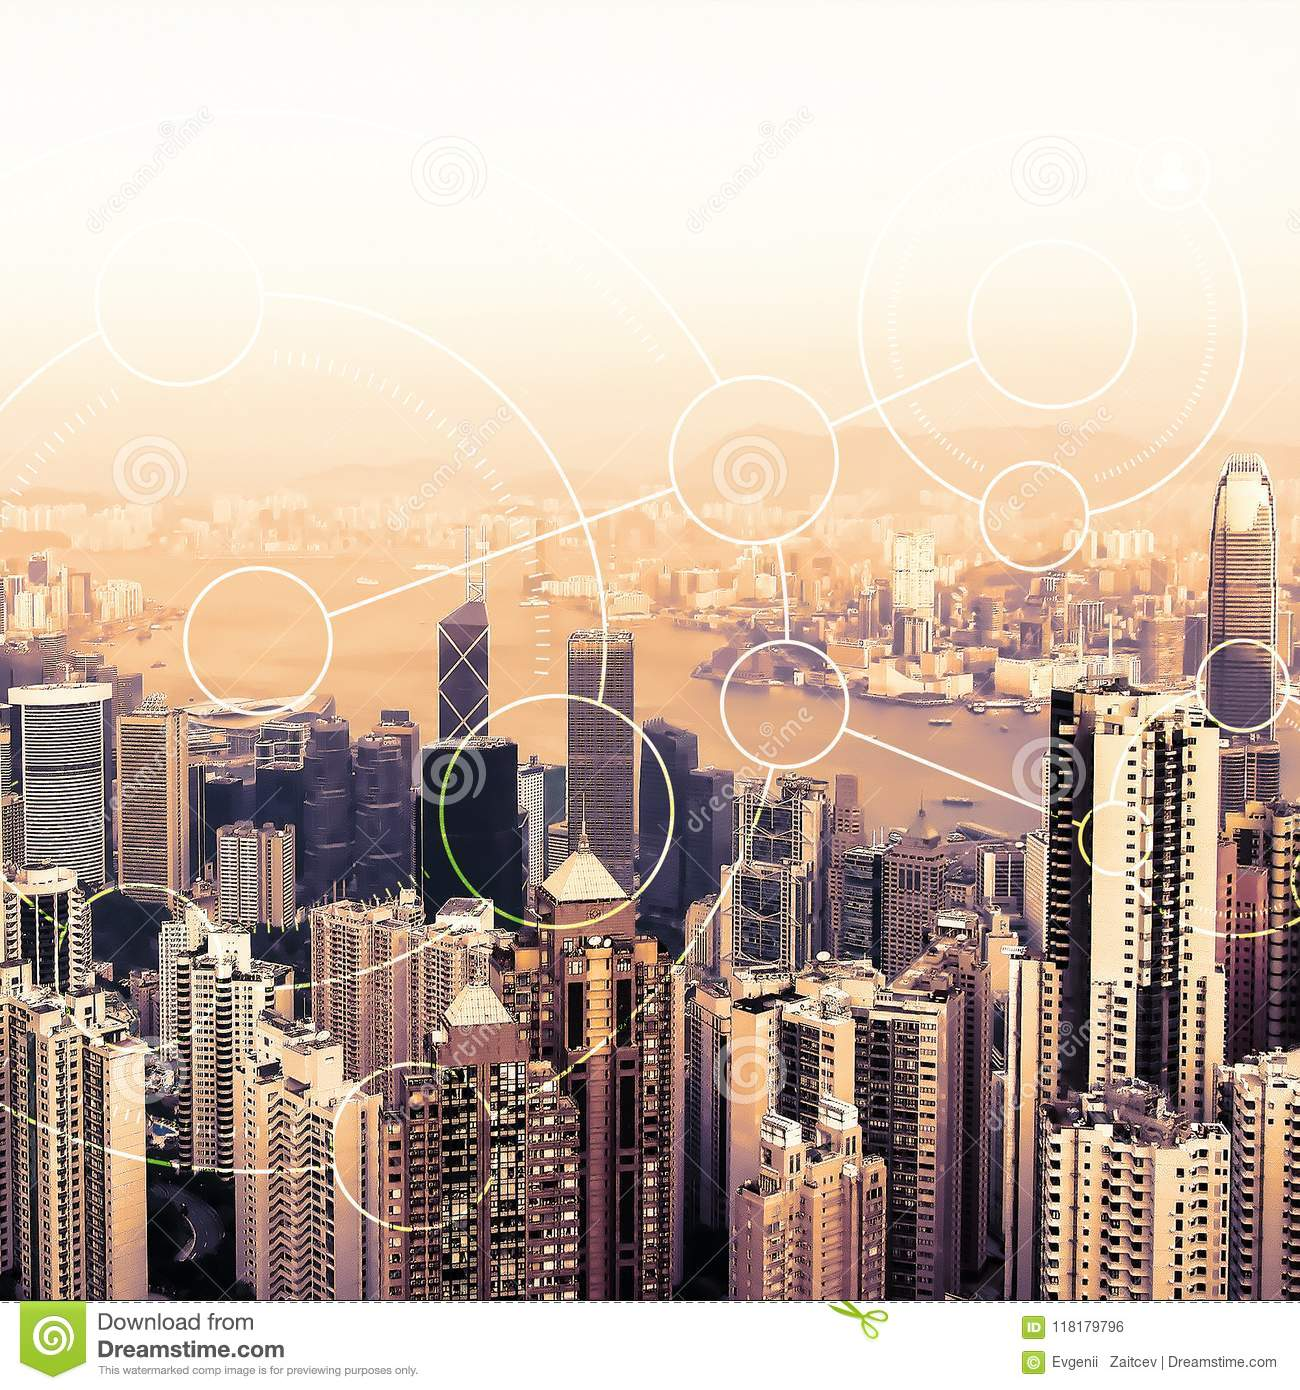 Modern urban skyline. Global communications and networking. Blockchain concept. High-speed data and internet connection